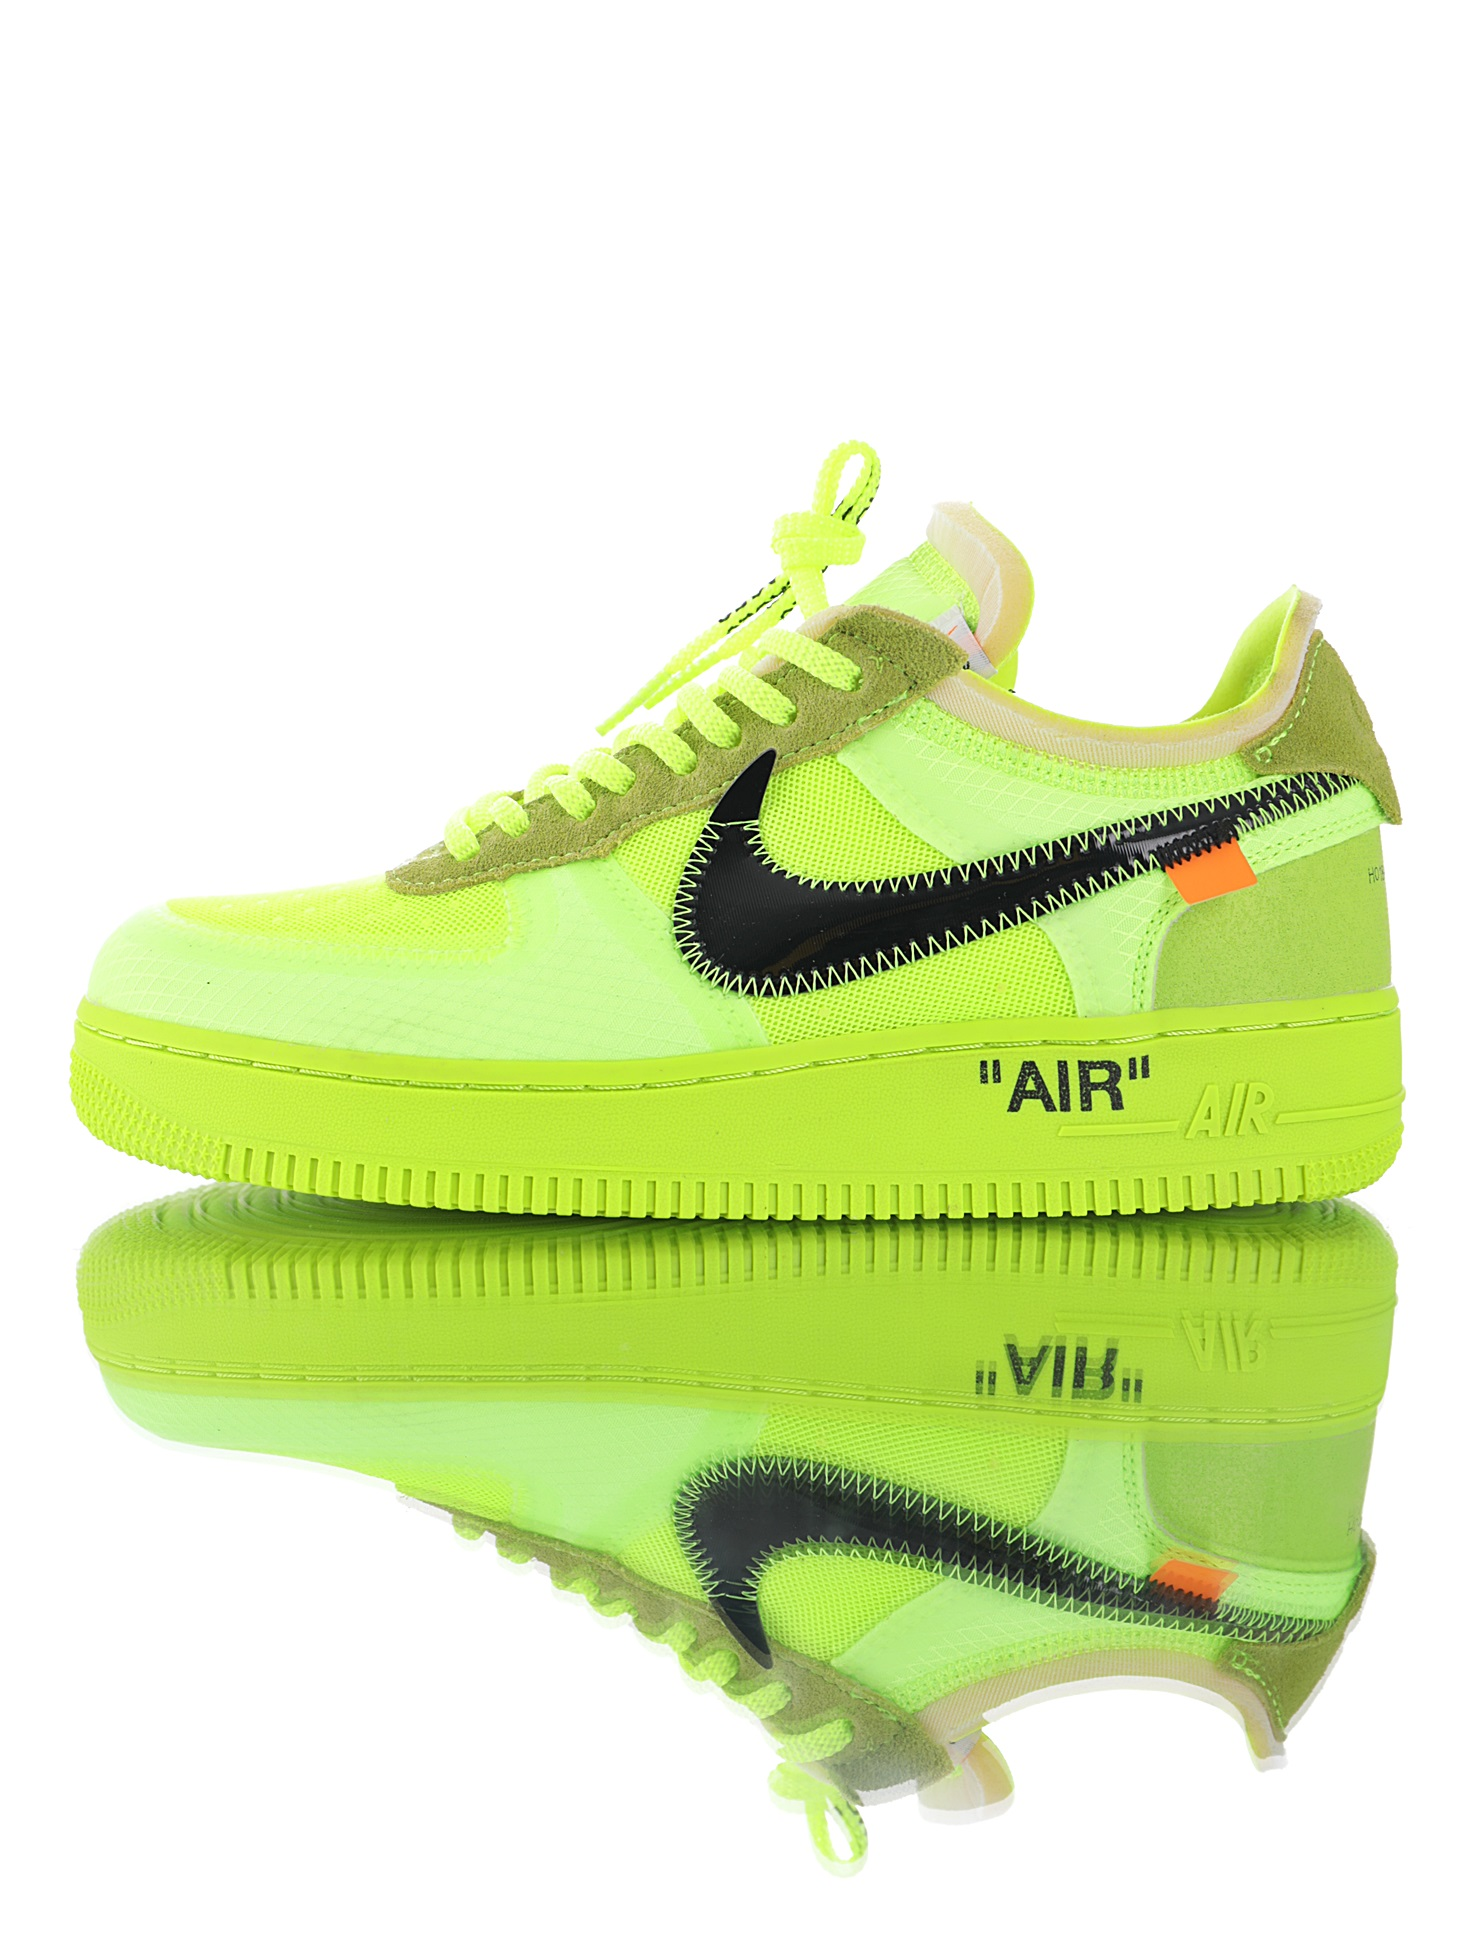 NIKE AIR FORCE VERDES OFF WHITE